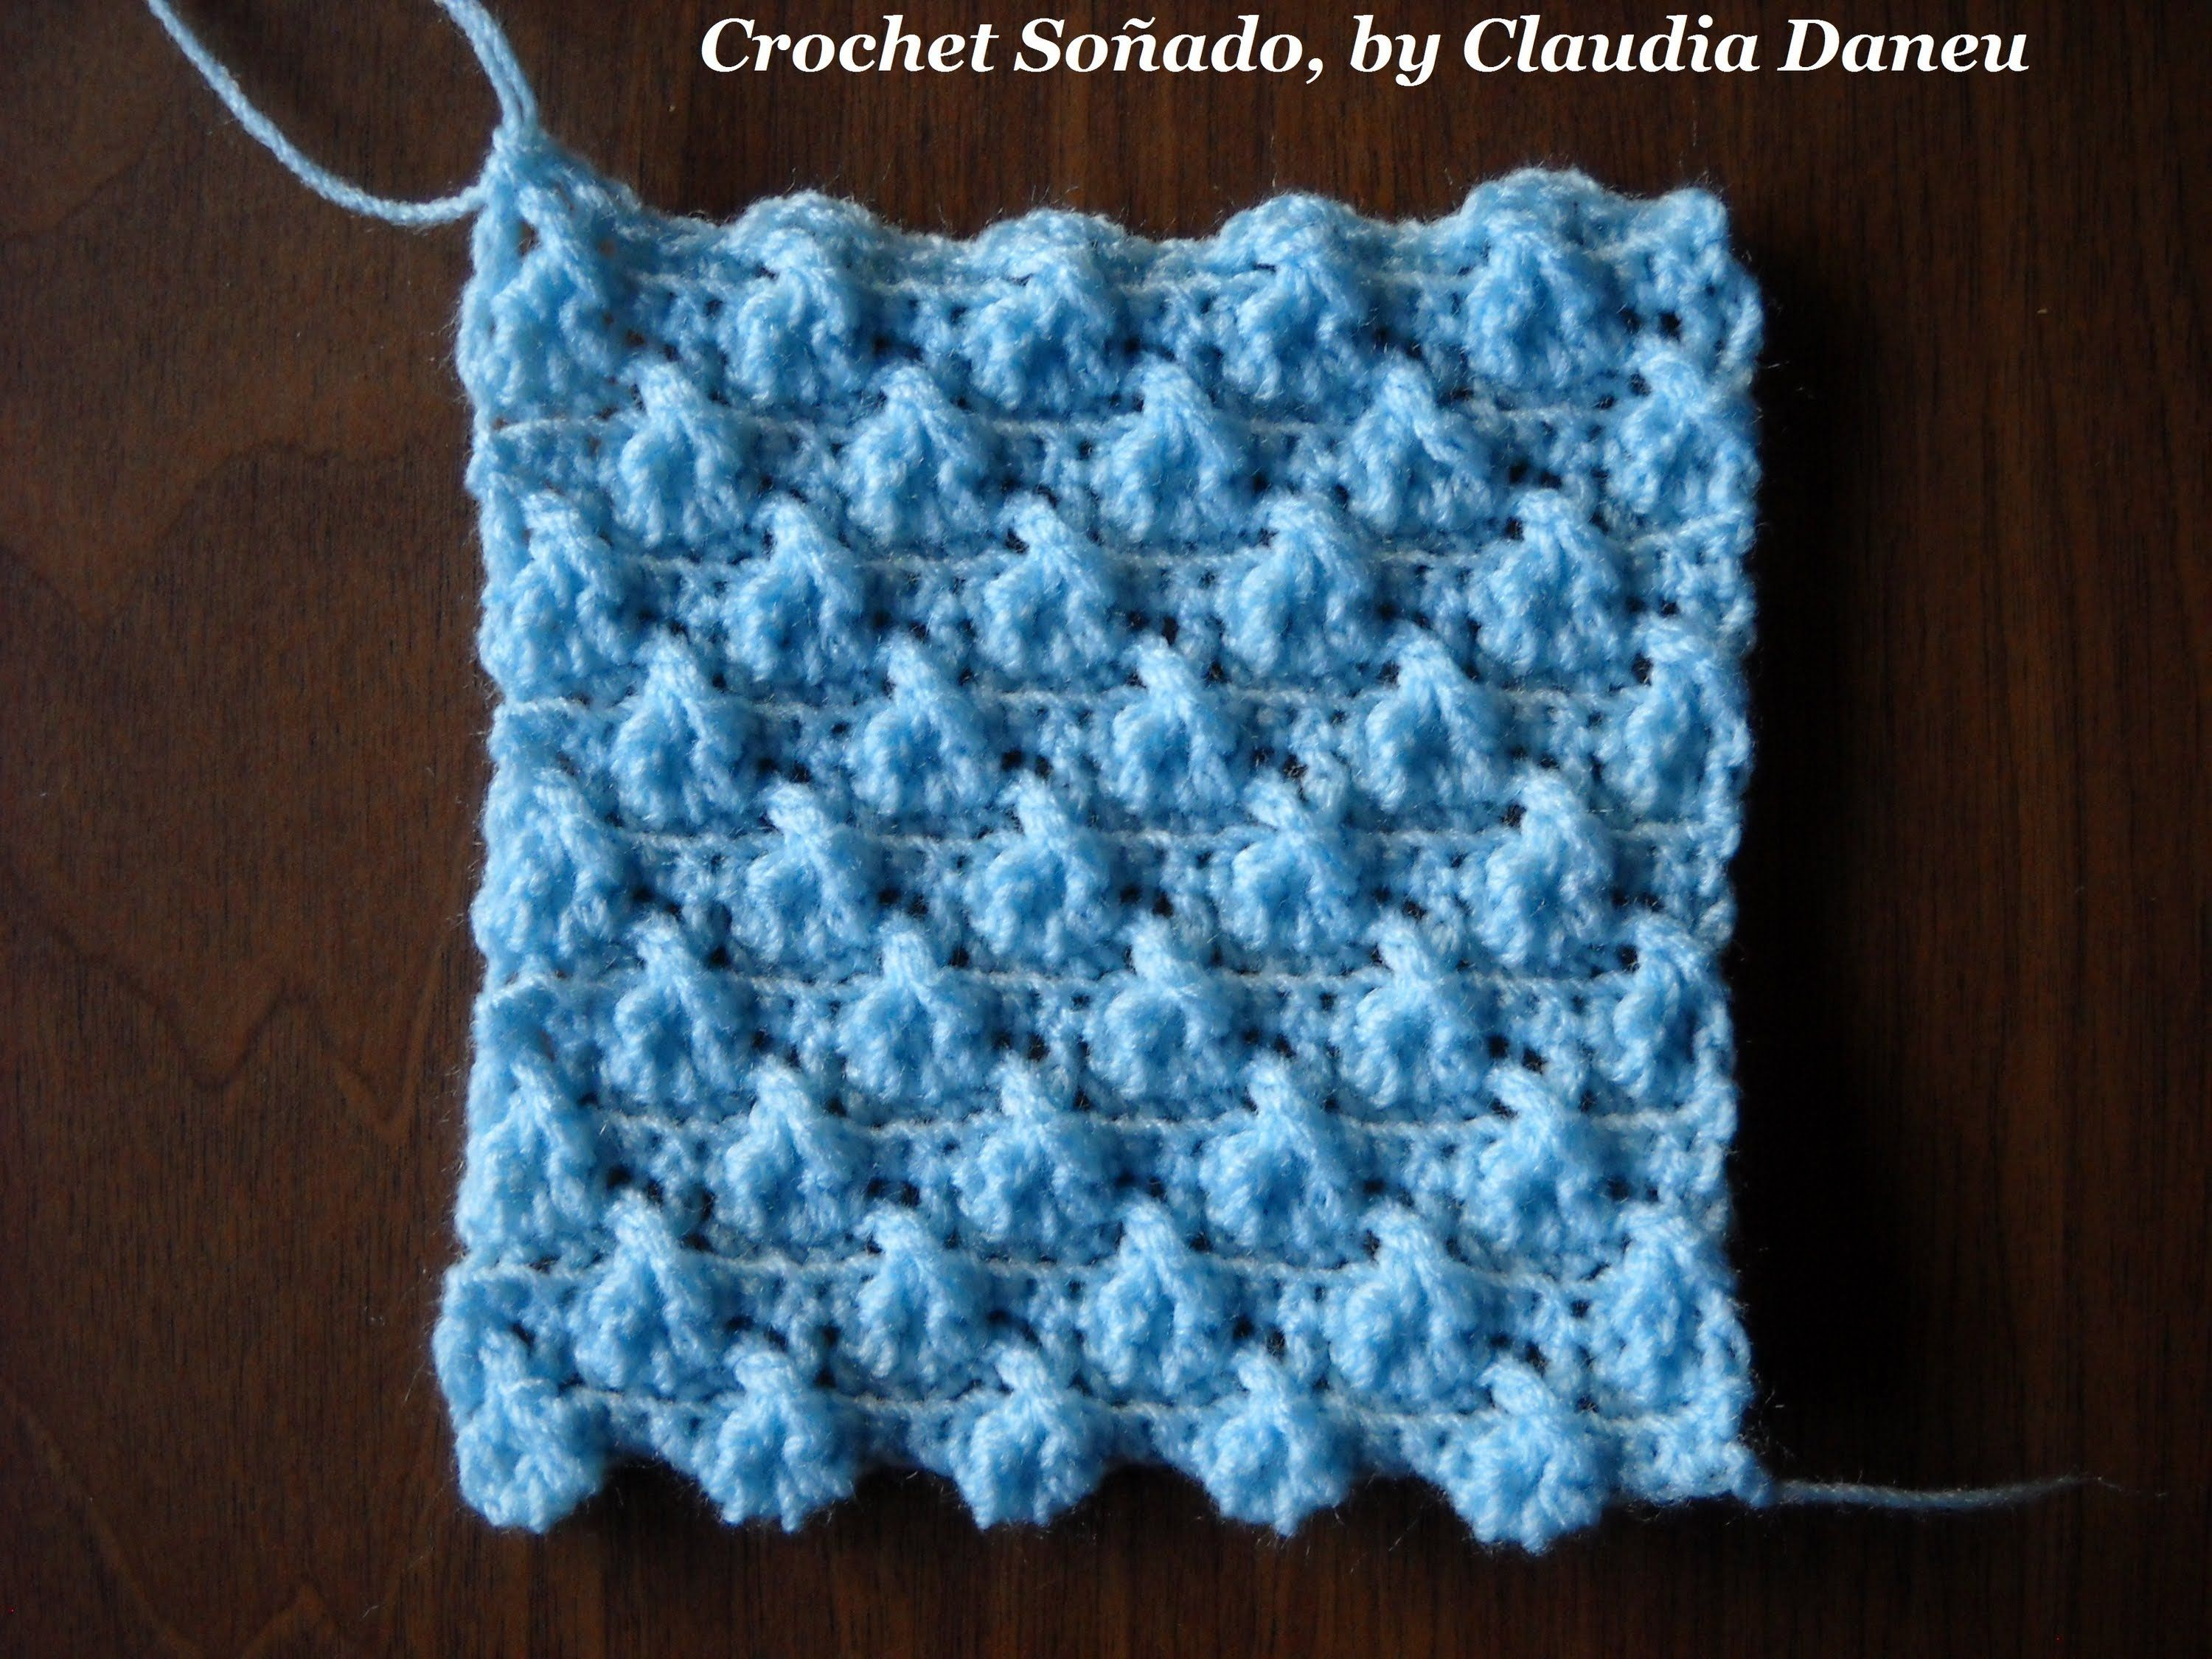 Another odd variety of crocheted double seed stitch, with crossed ...